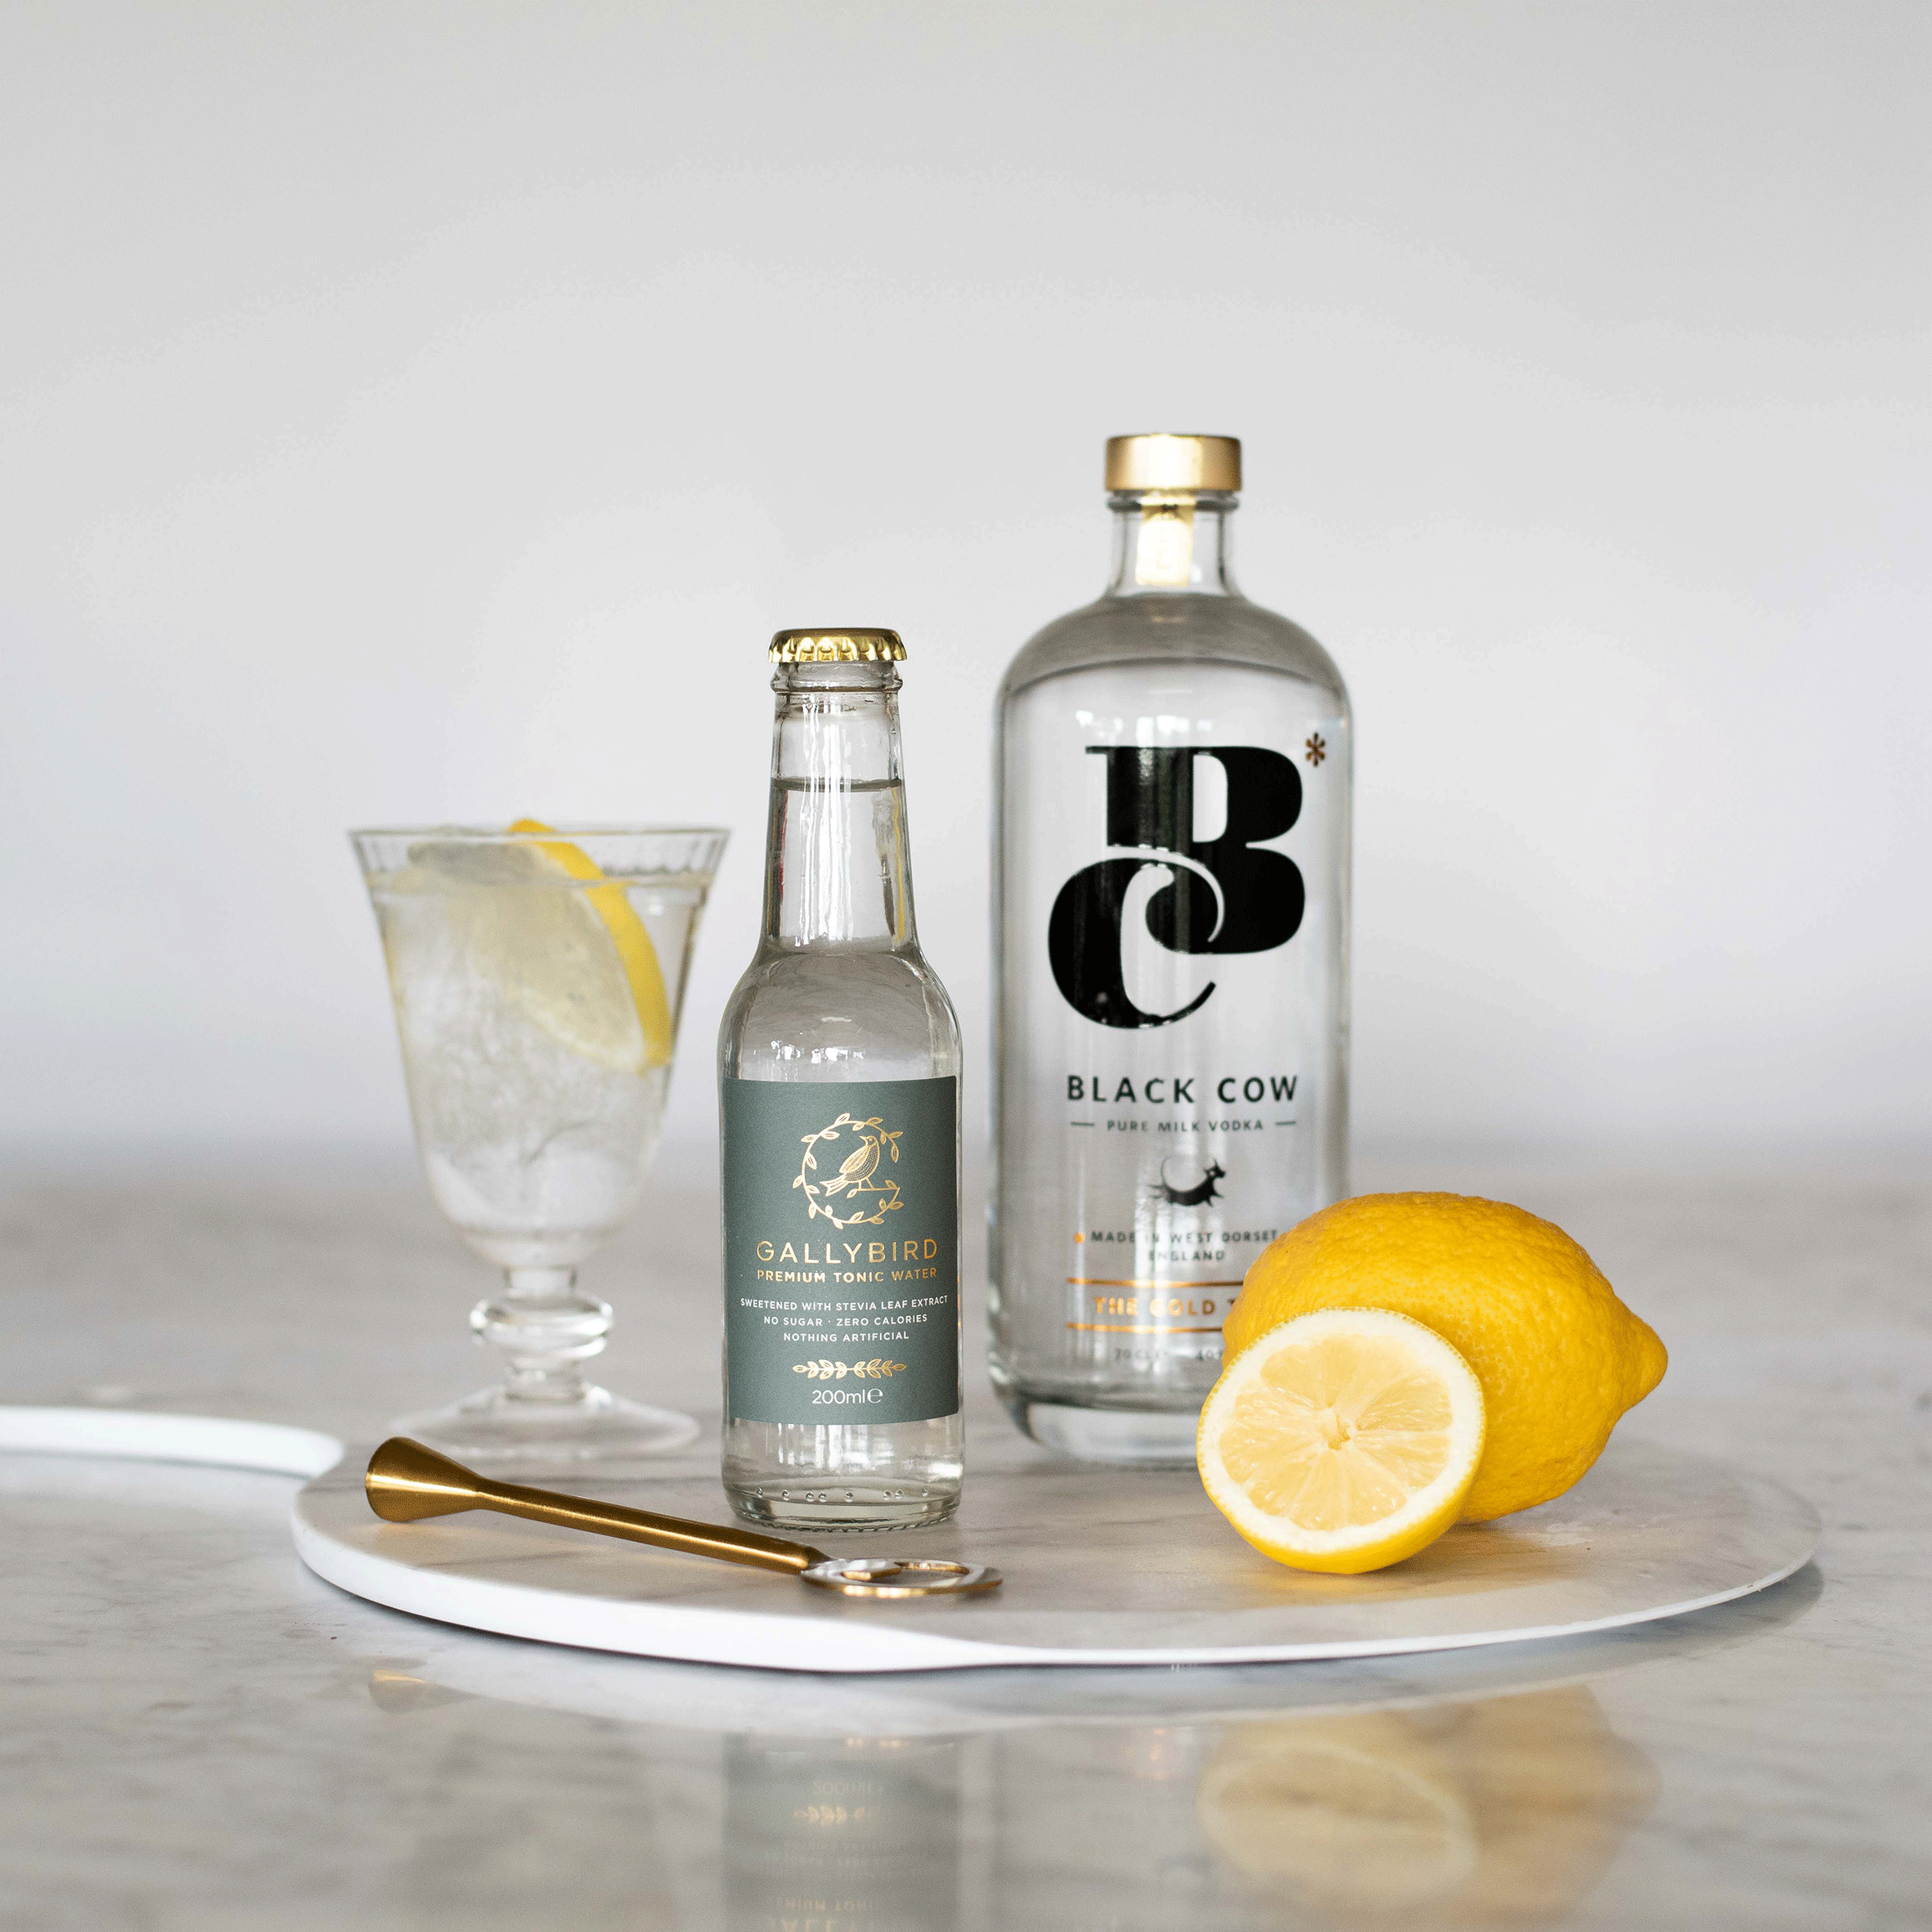 Gallybird and Black Cow Premium Vodka - We love this unusual and delicious vodka made from whey, the excess produced from the cheese making process. Gallybird does not overpower but allows the soft flavours of this unique vodka shine though. Pour over ice with a slice.